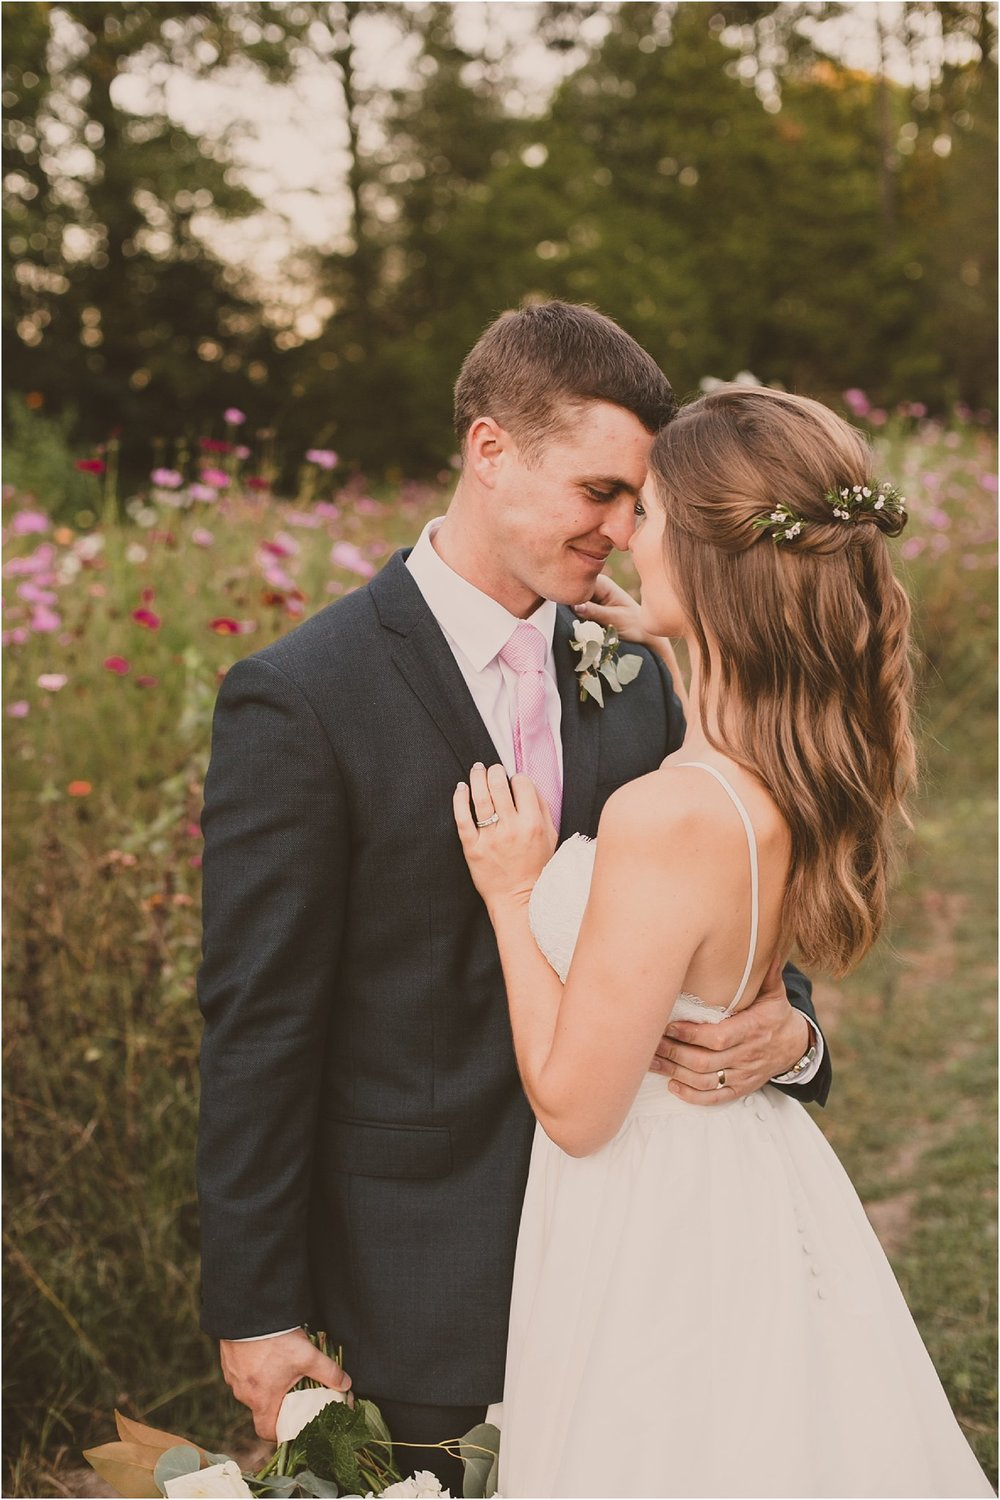 PattengalePhotography_BohoWedding_RichmondVirginia_Photographer_SevenSprings_Manor_Estate_Wedding_Hannah&Thomas_Elegant_Fall_Bohemian_blush_gold_farm__0082.jpg